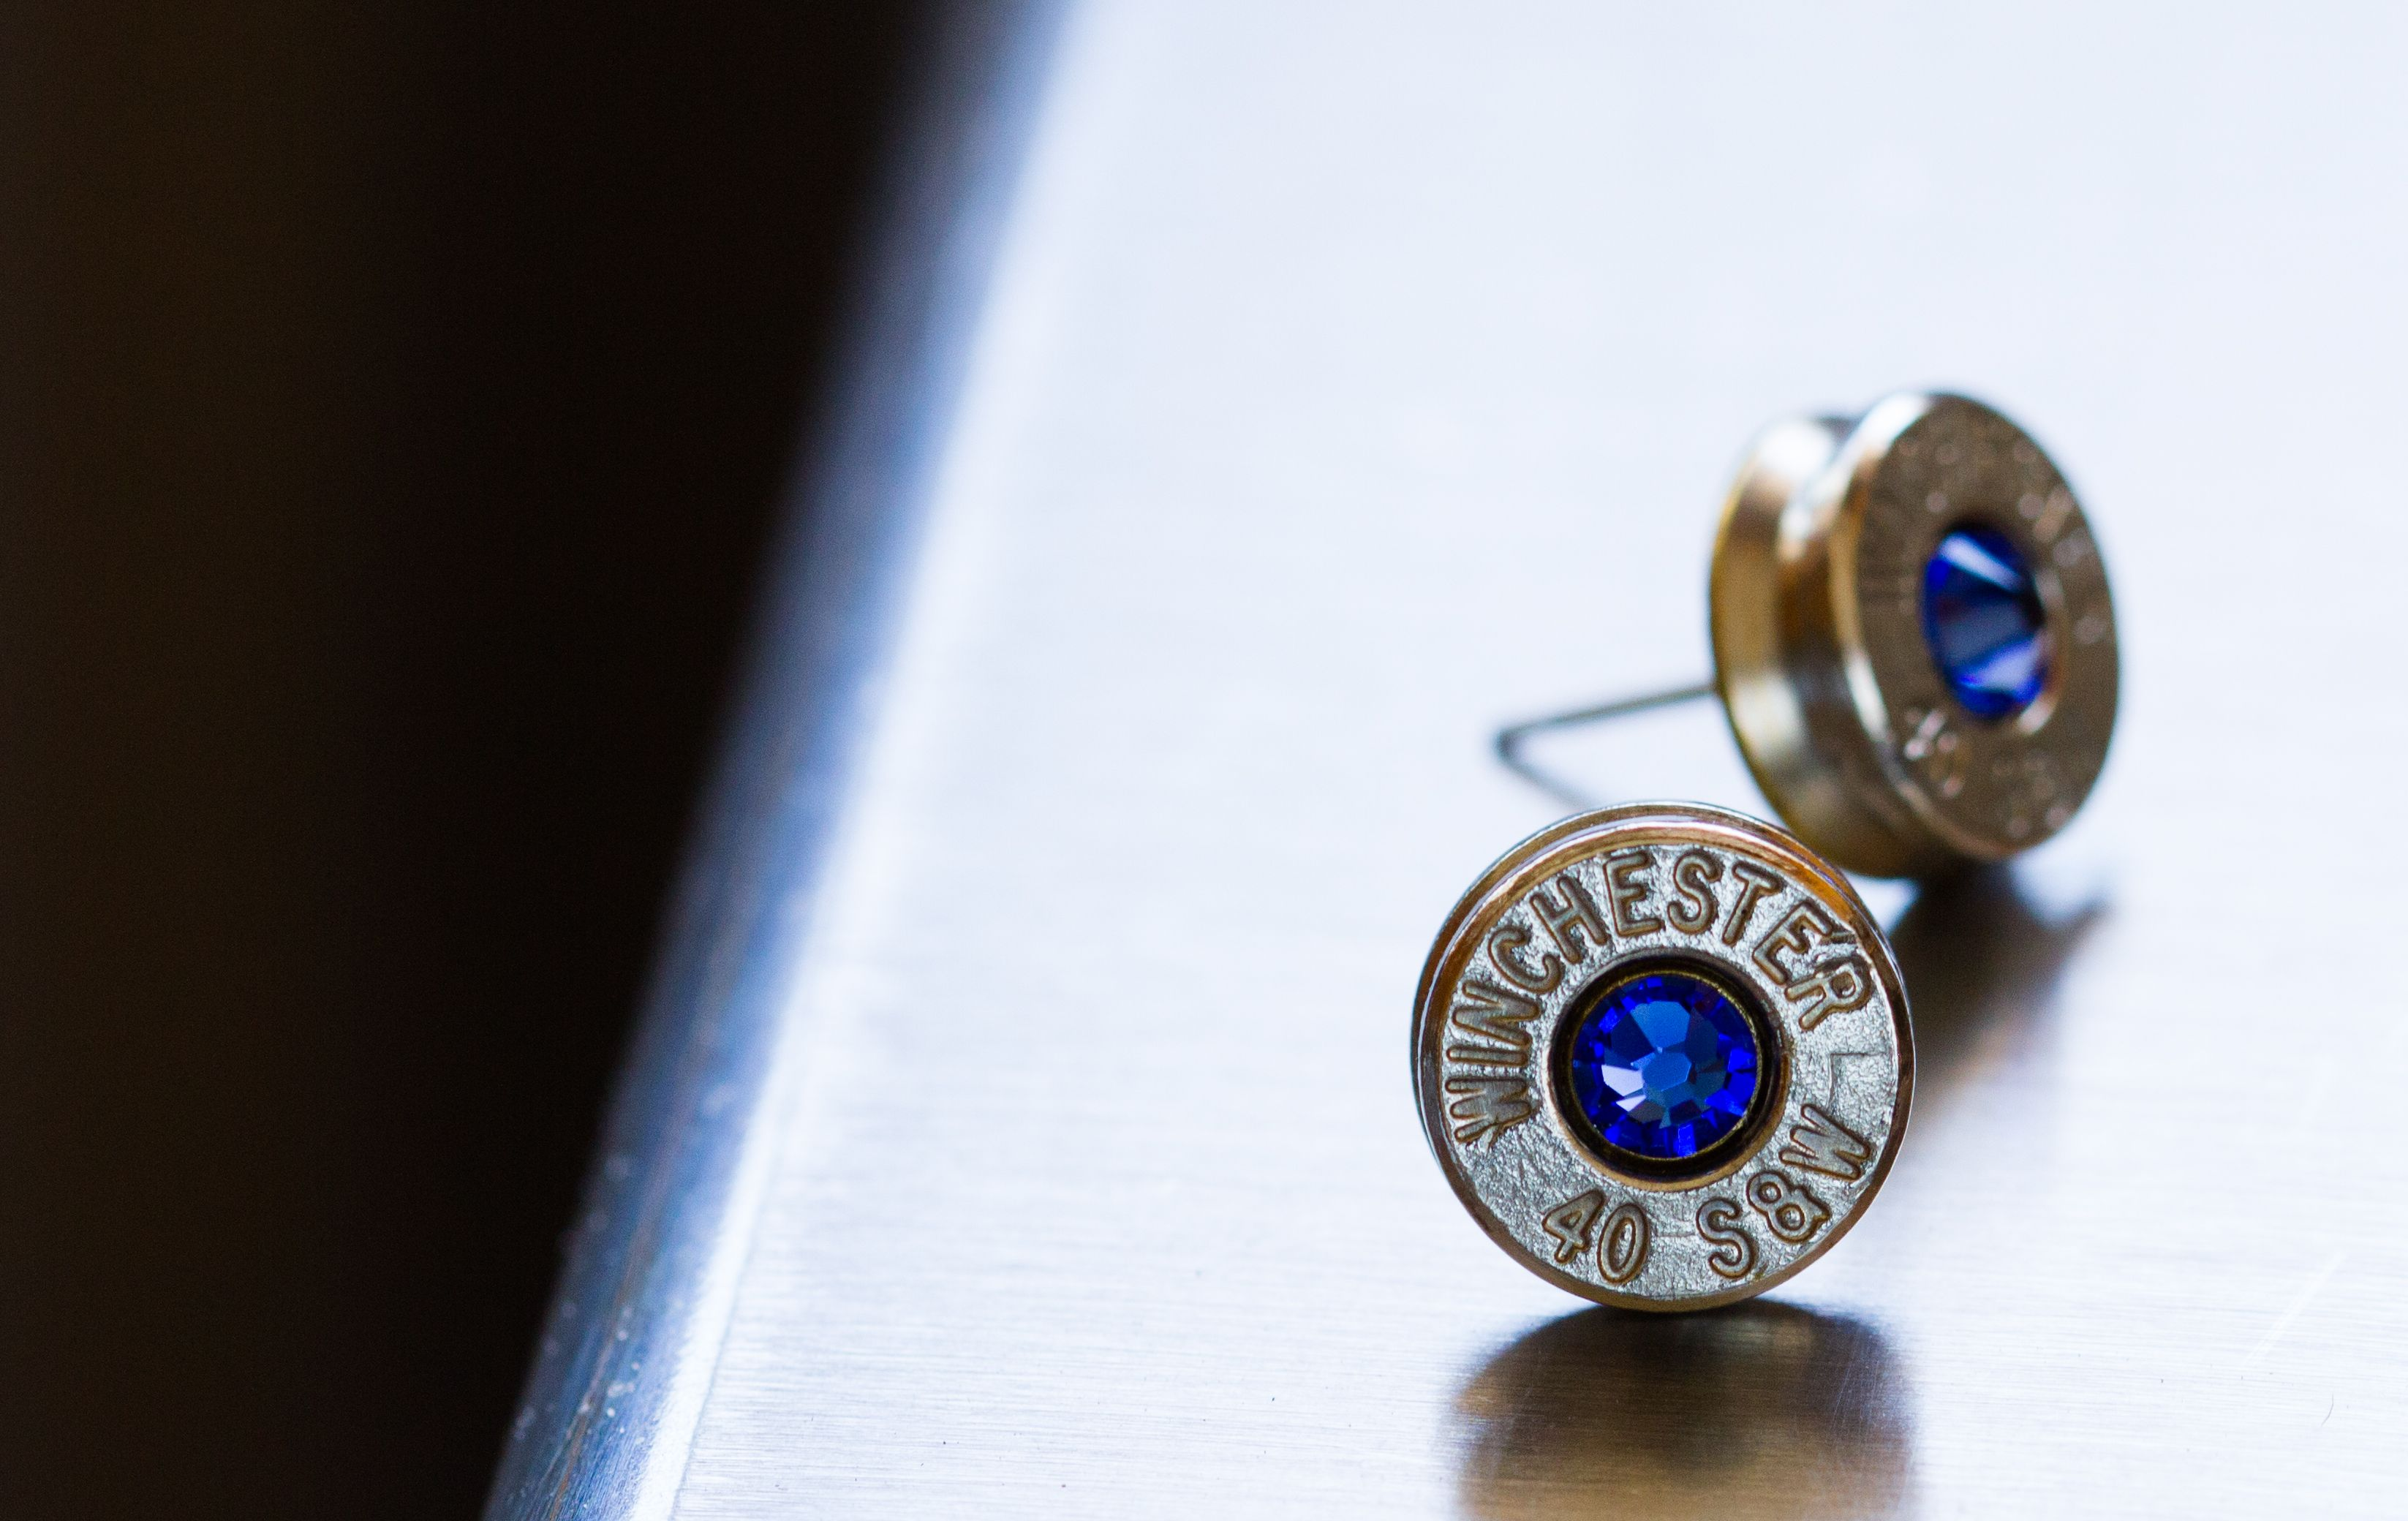 Nickel plated 40 cal with blue sapphire swarovski crystal.